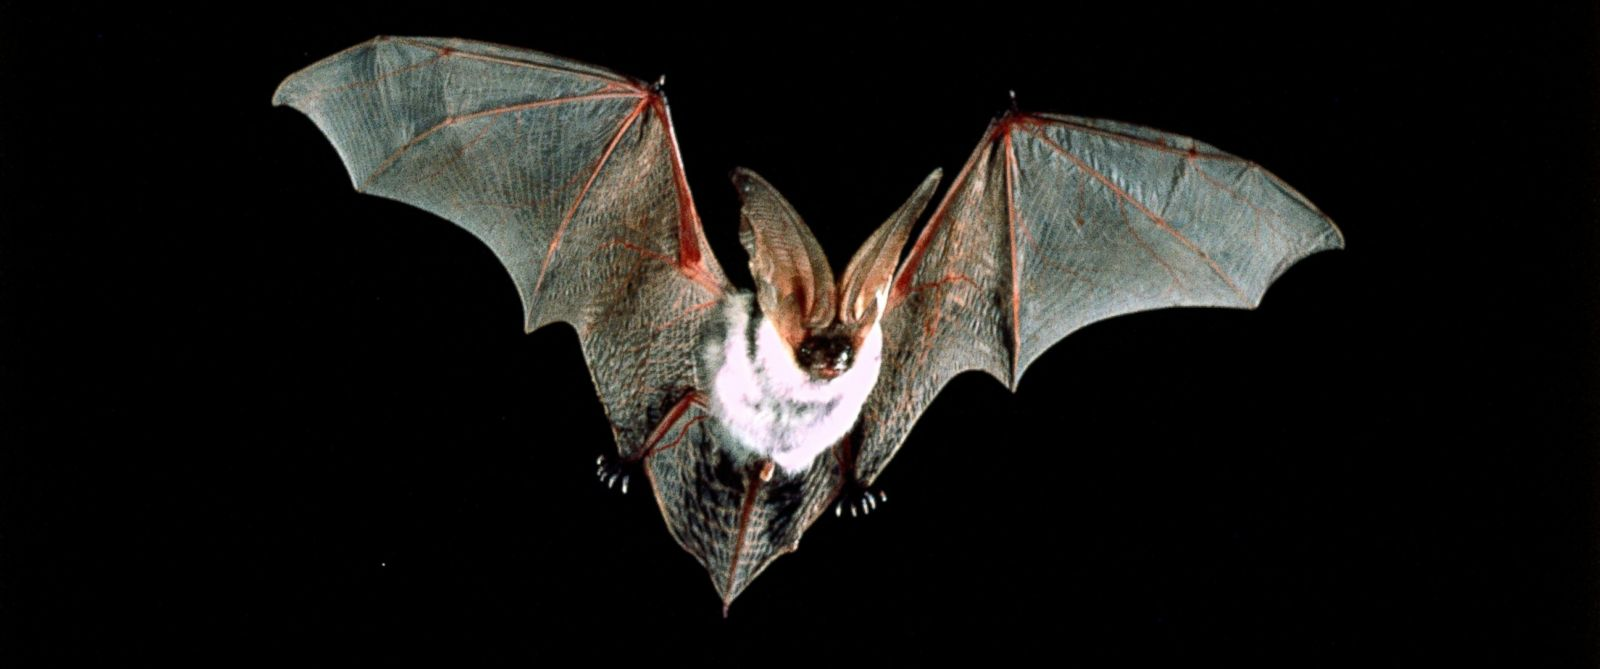 bats proposed as latest weapon to fight zika virus in